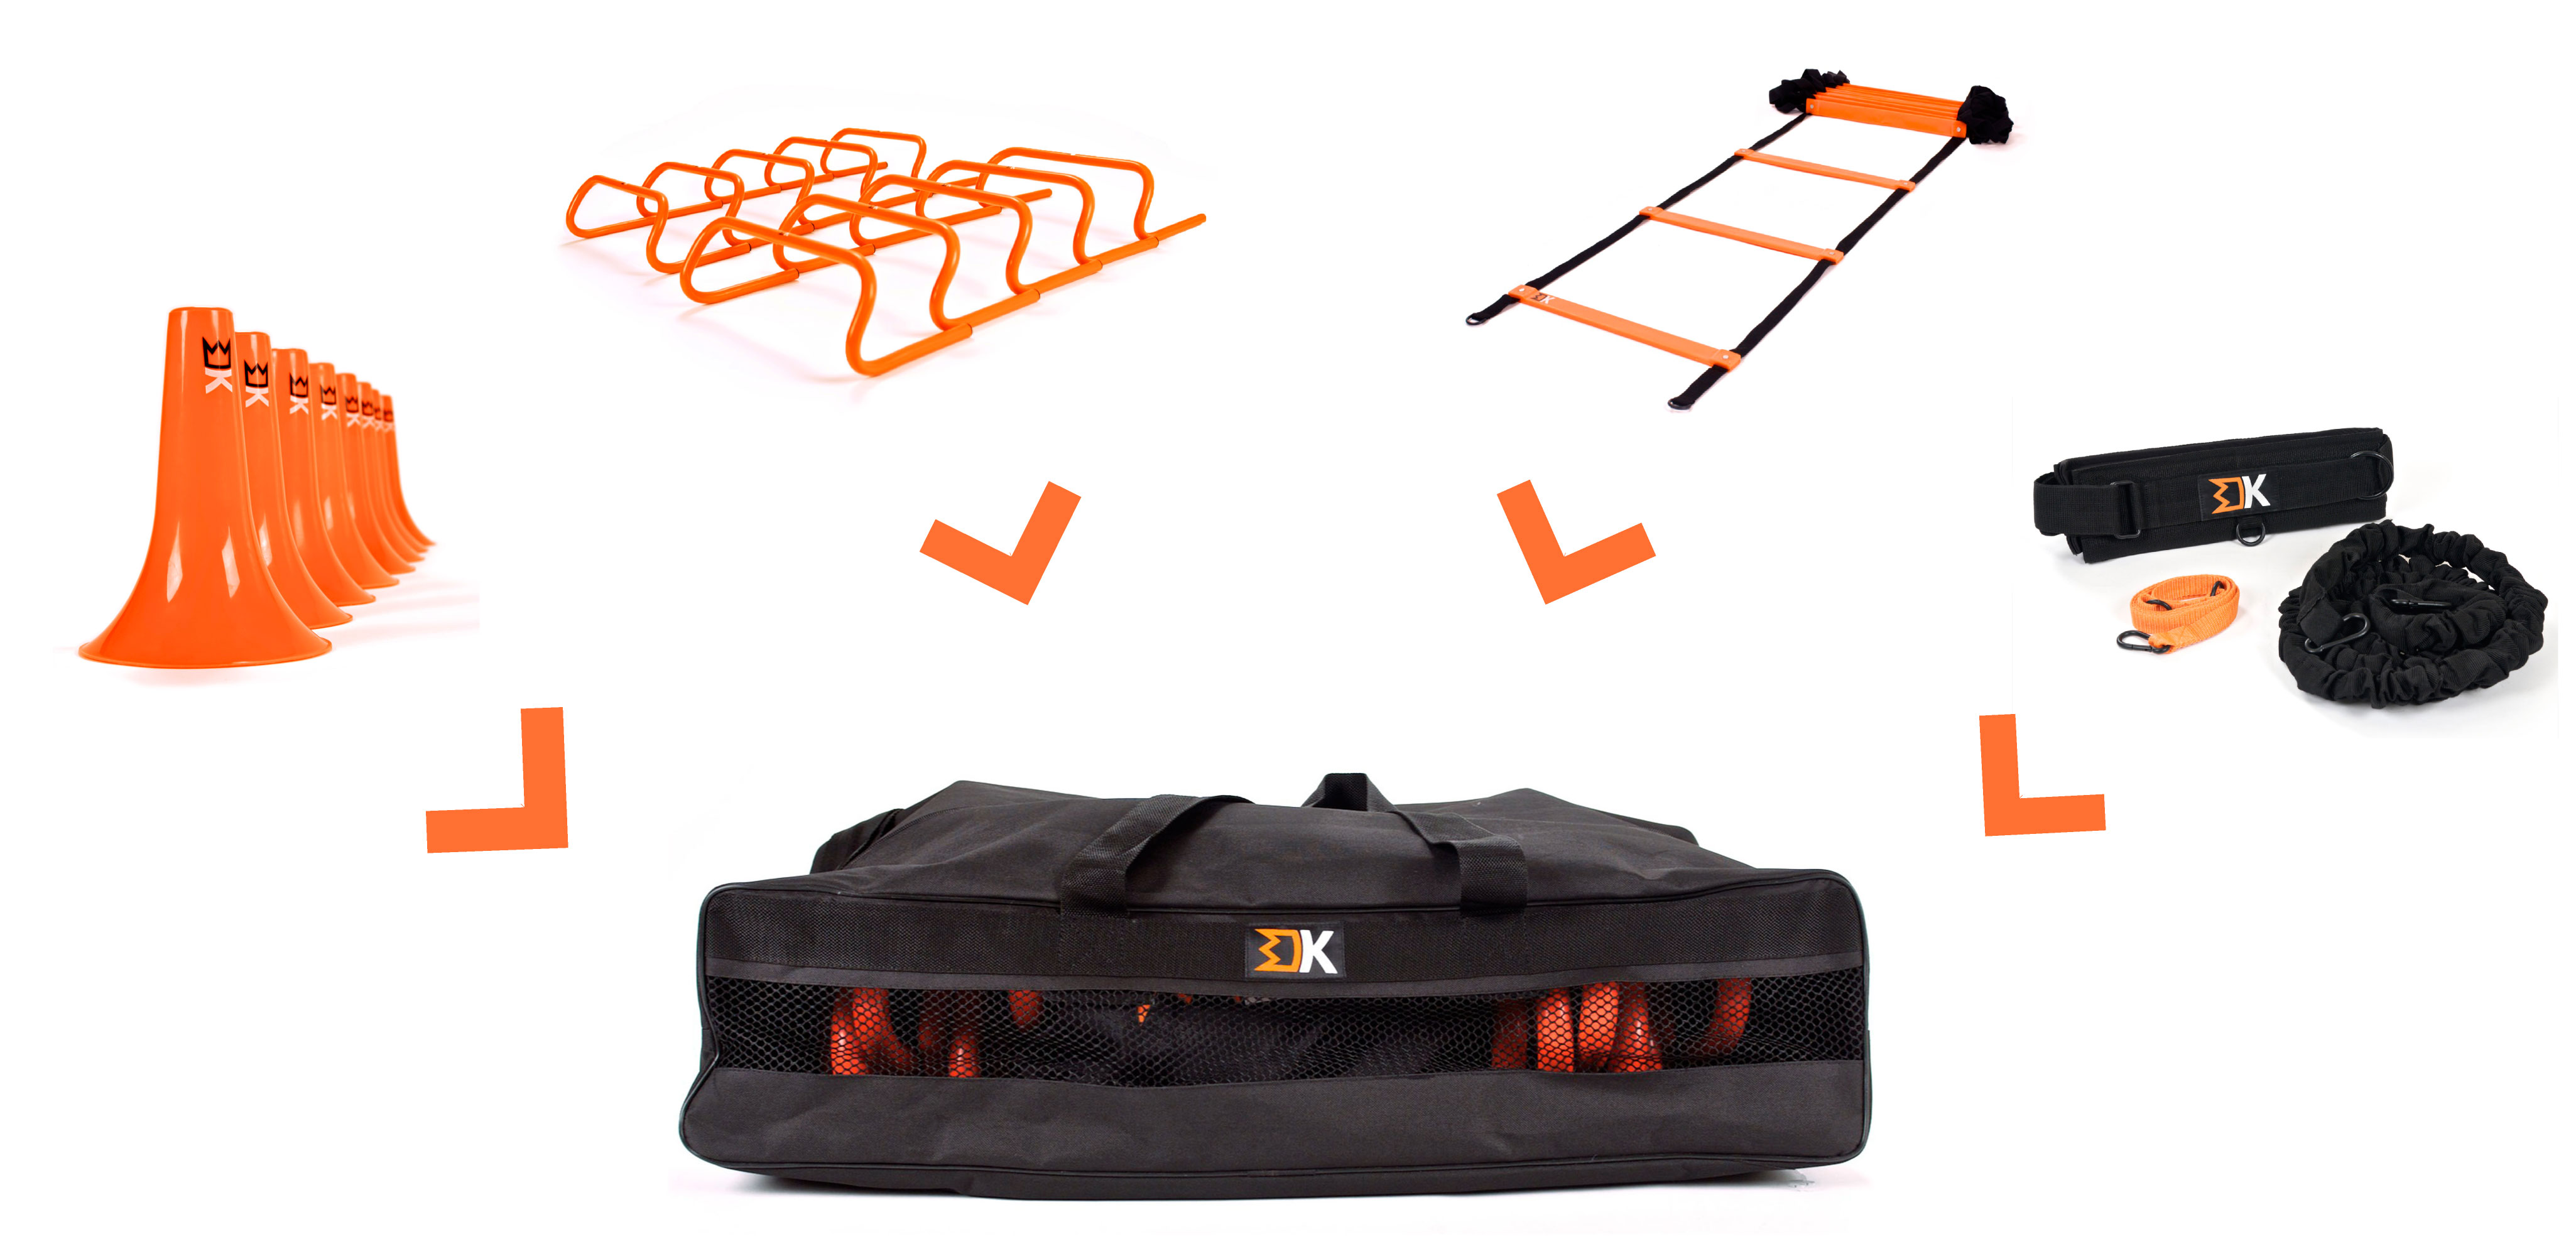 King Sports Training Equipment Offers 20% Off for Halloween Week